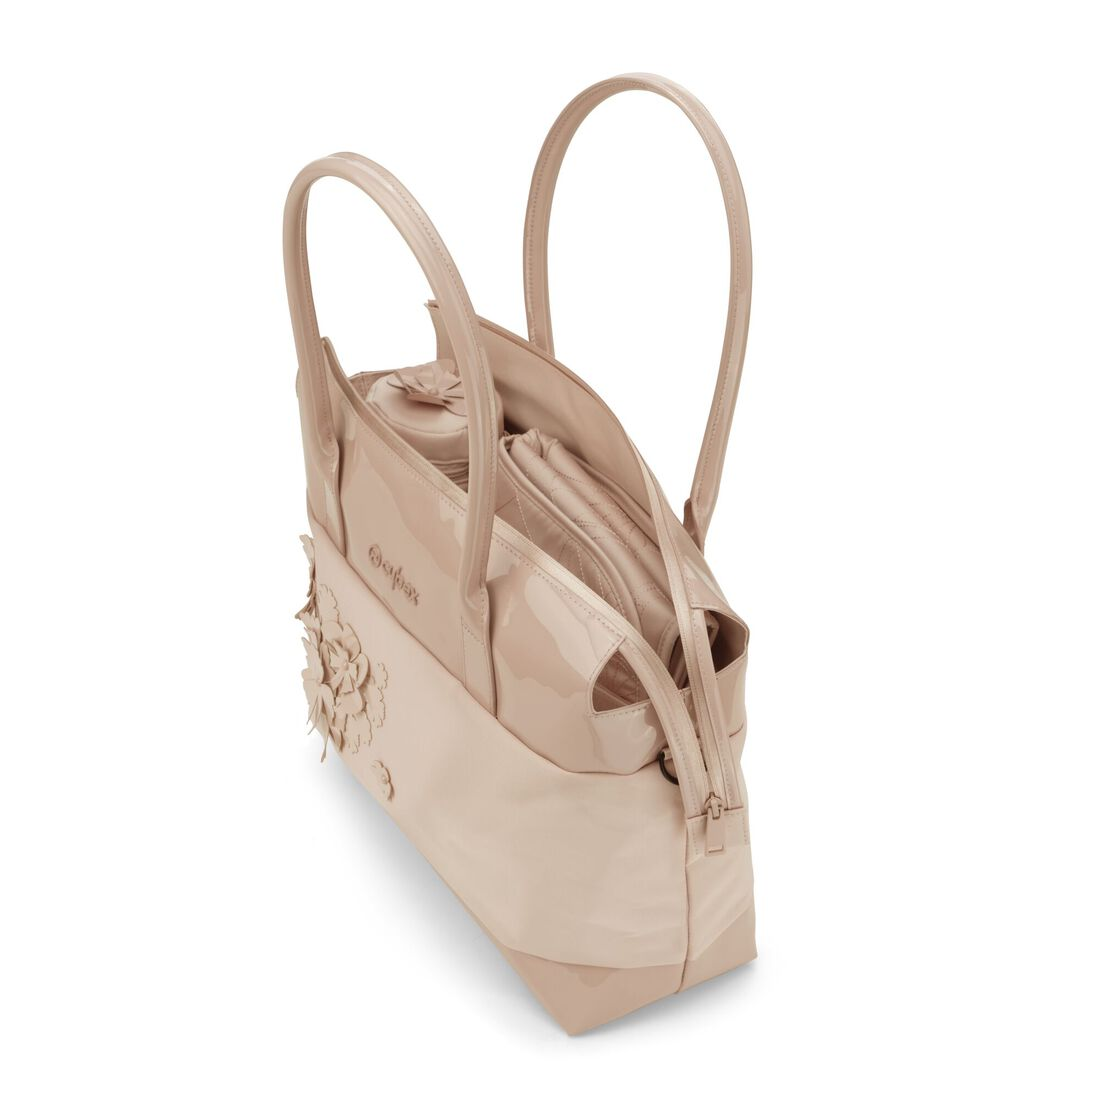 CYBEX Changing Bag Simply Flowers - Nude Beige in Nude Beige large image number 2